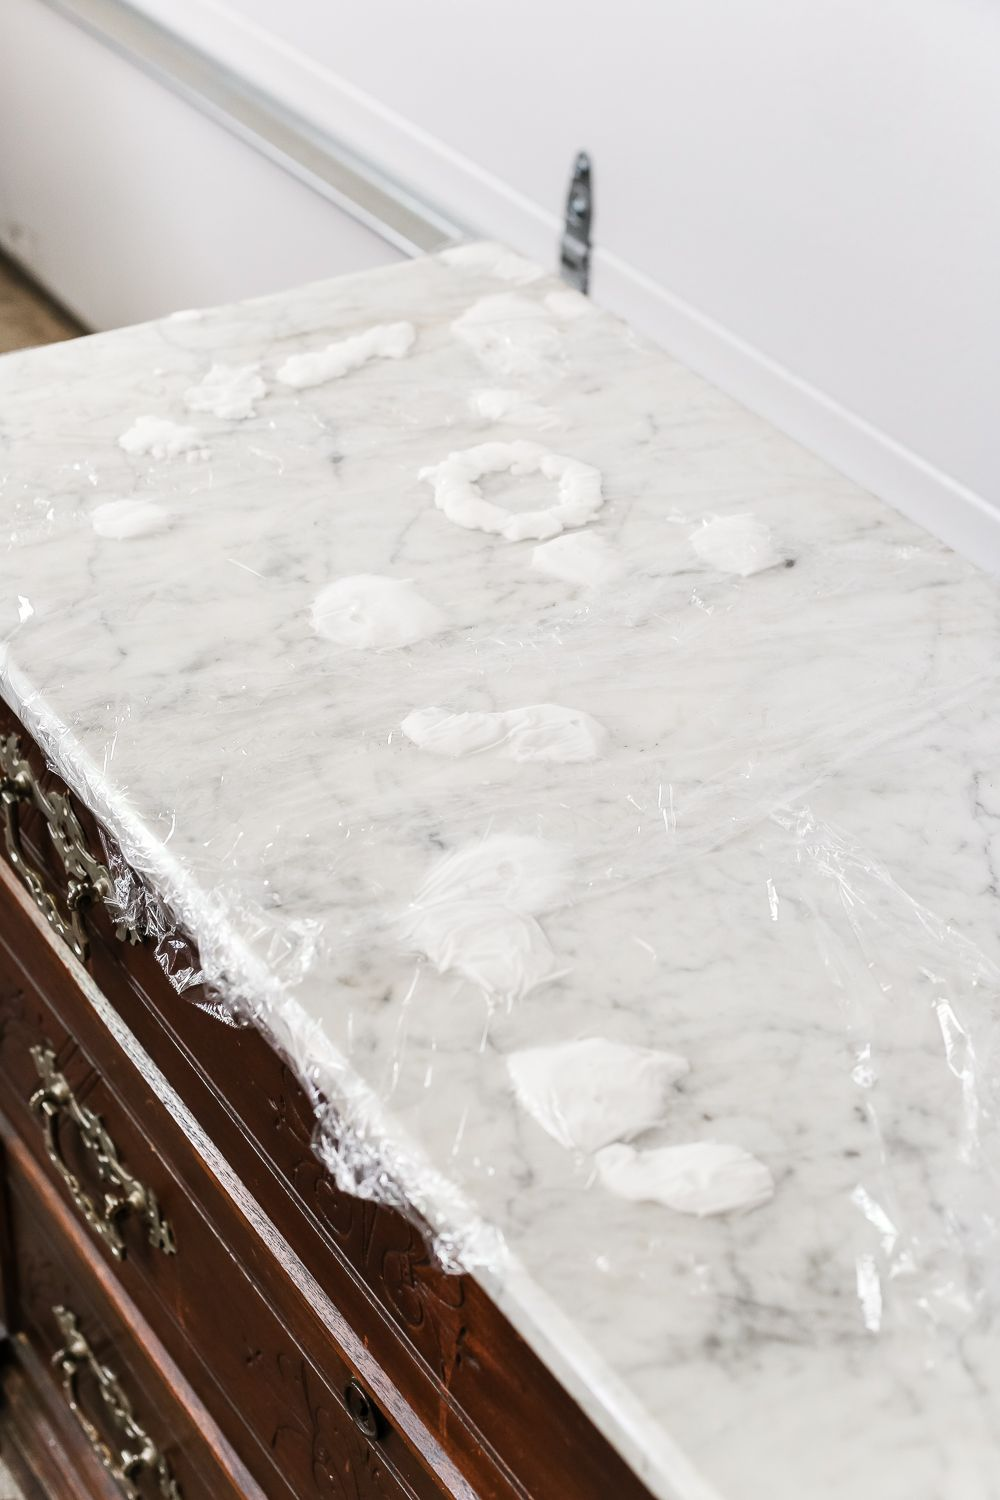 How To Remove Sharpie From Countertop How To Remove Stains From Marble Foyer Chest Makeover